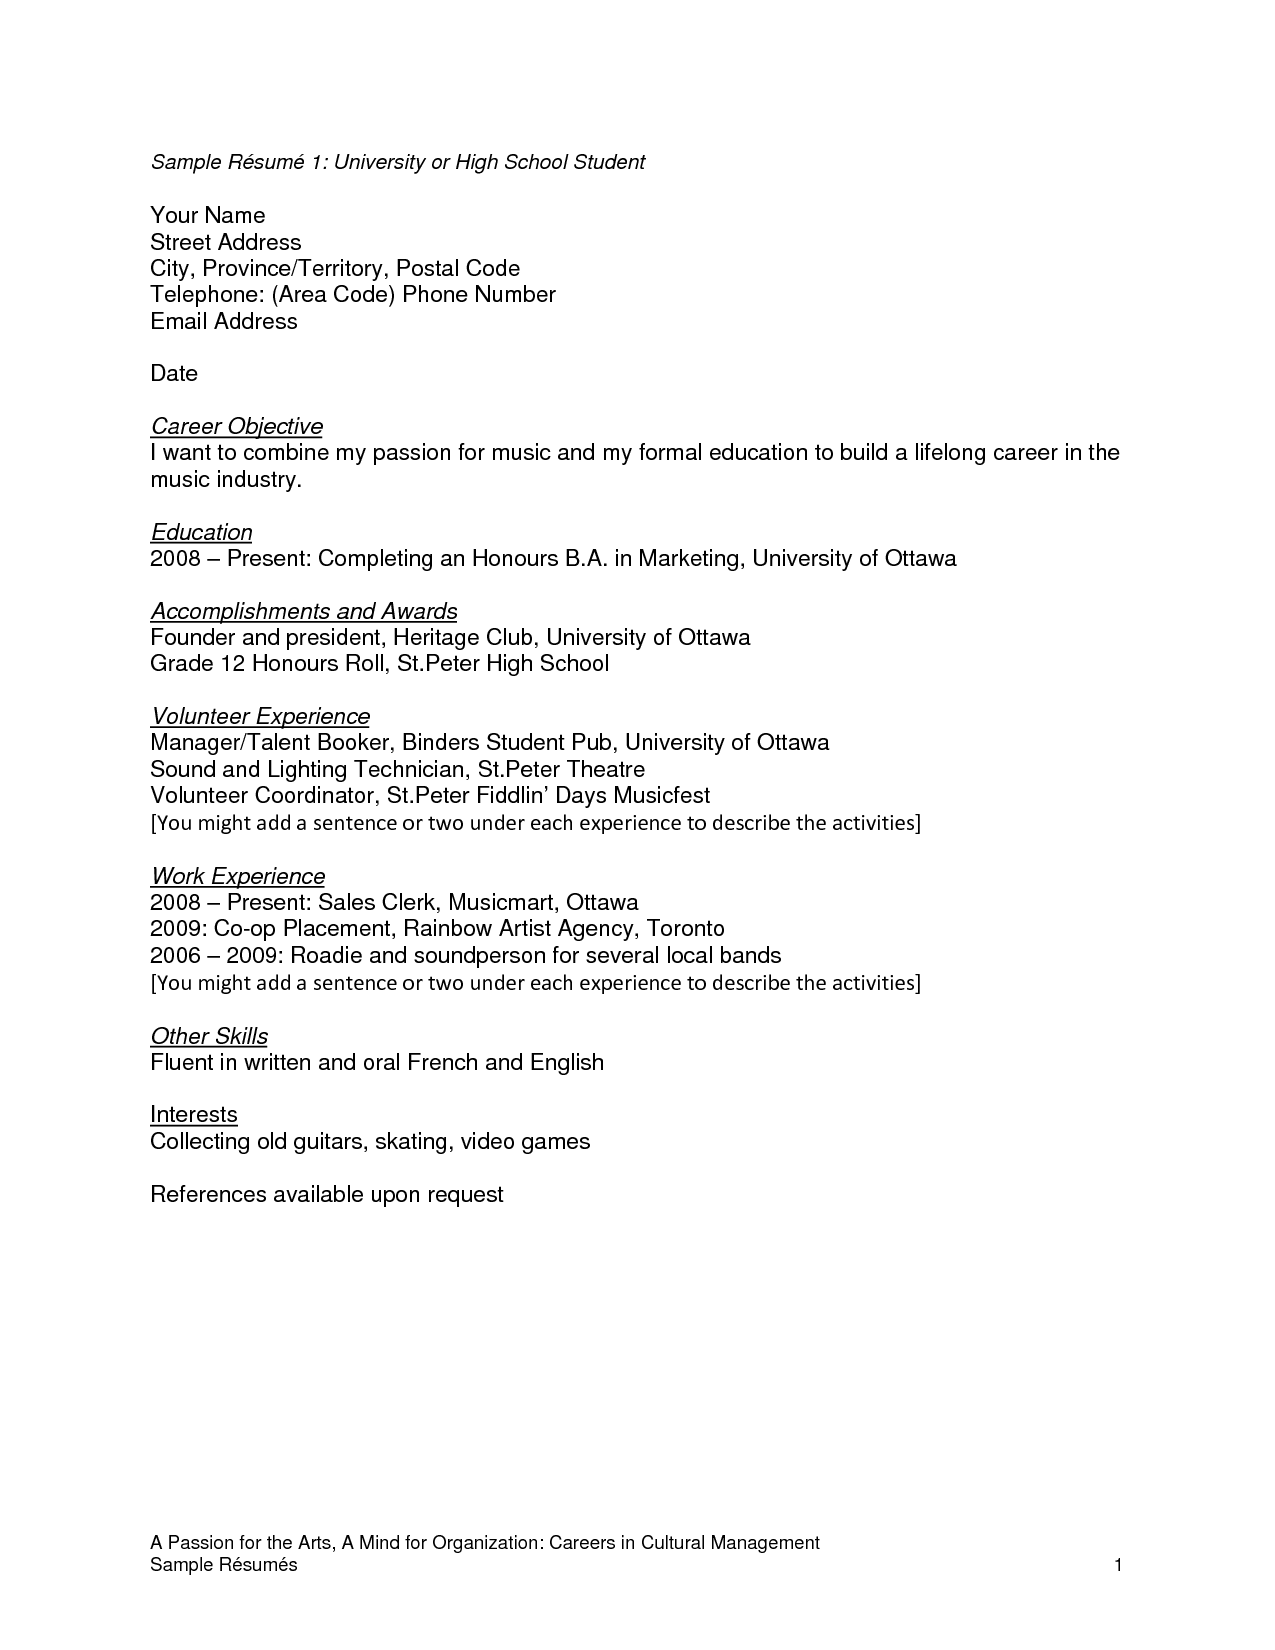 Sample Student Resume Resume Samples For High School Students Flickr Photo Sharing